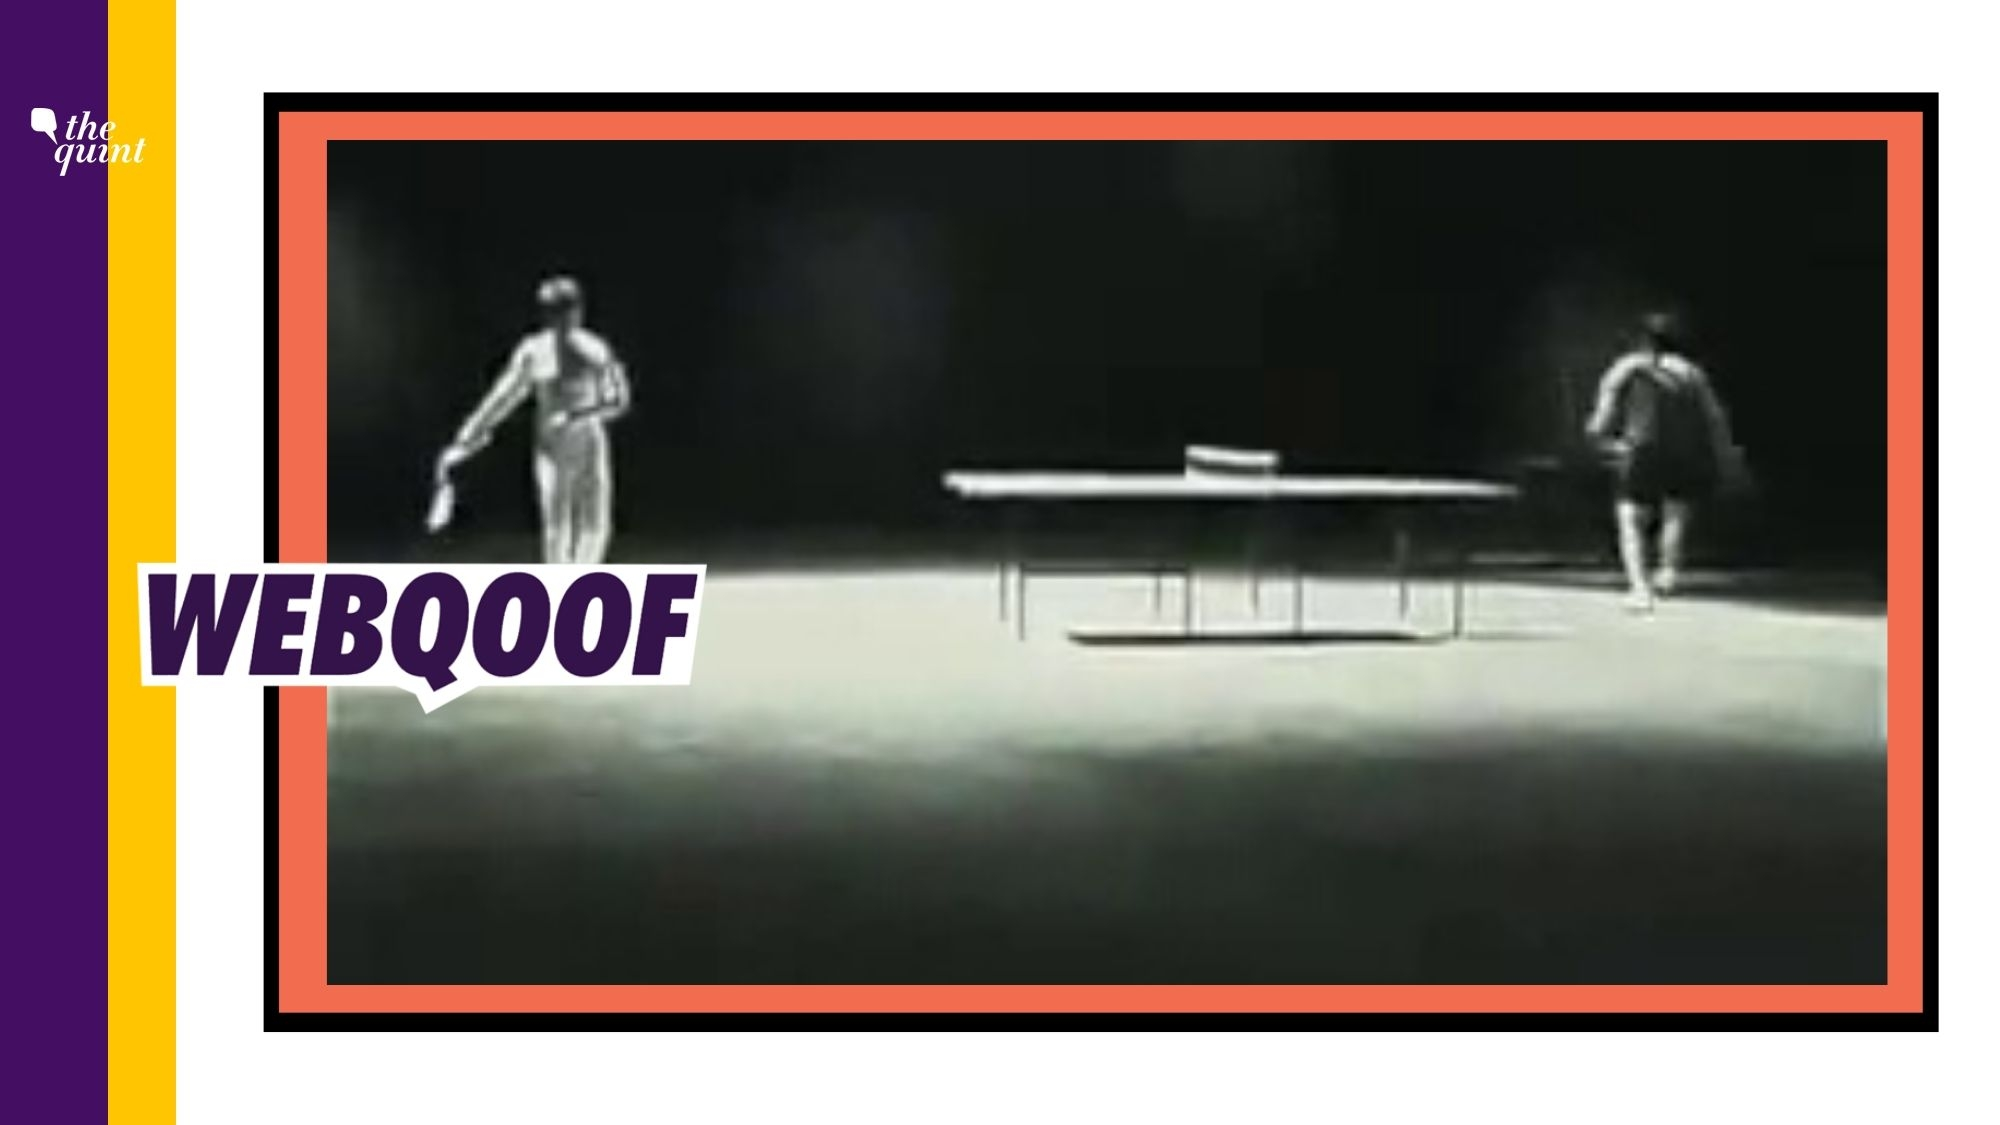 Decade Old Nokia Ad Shared as Bruce Lee Playing Table Tennis